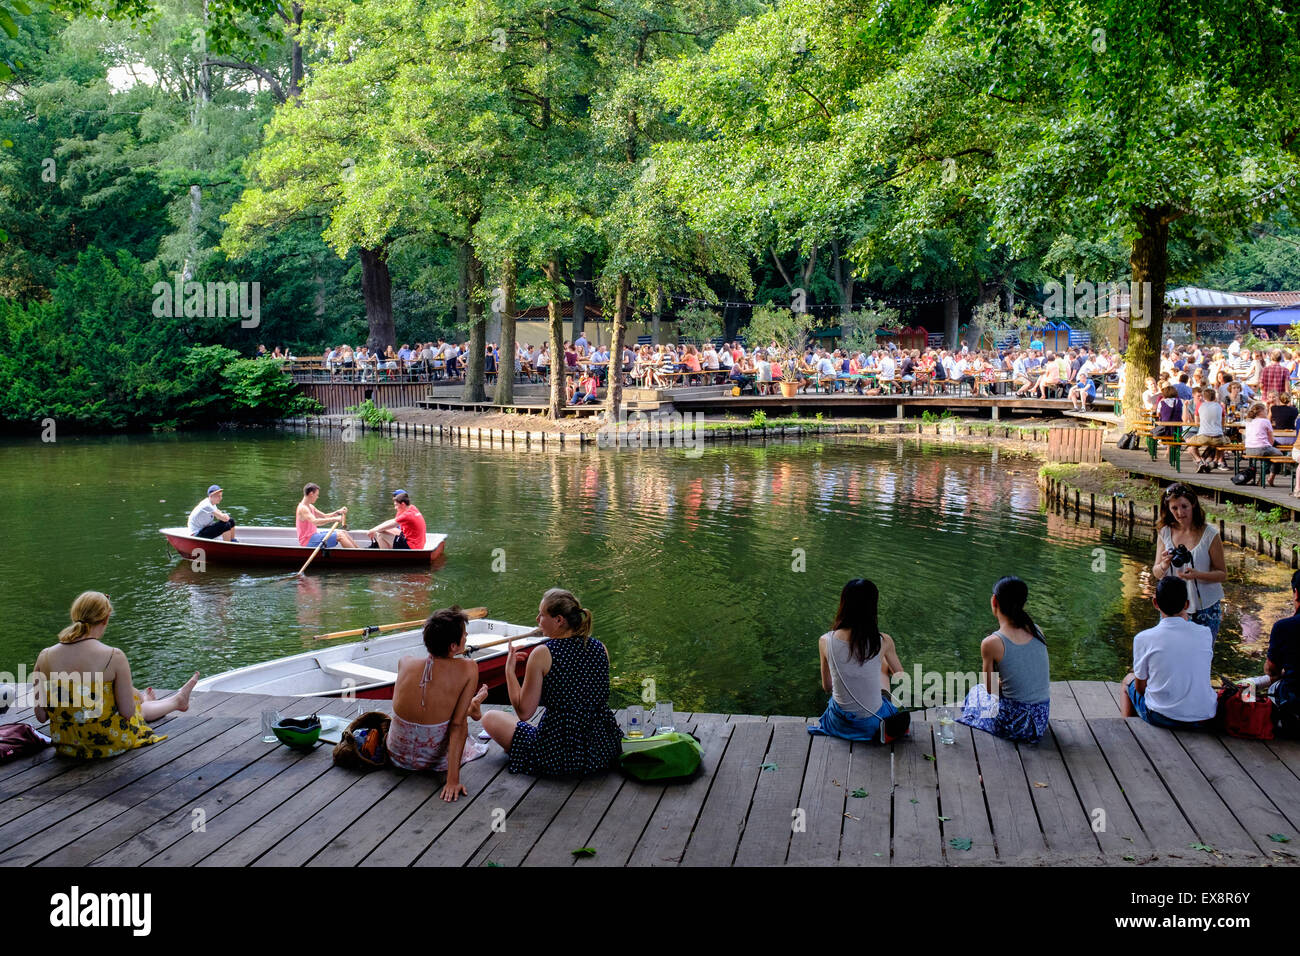 Busy beer garden in summer at Cafe am Neuen See in Tiergarten park in Berlin Germany Stock Photo